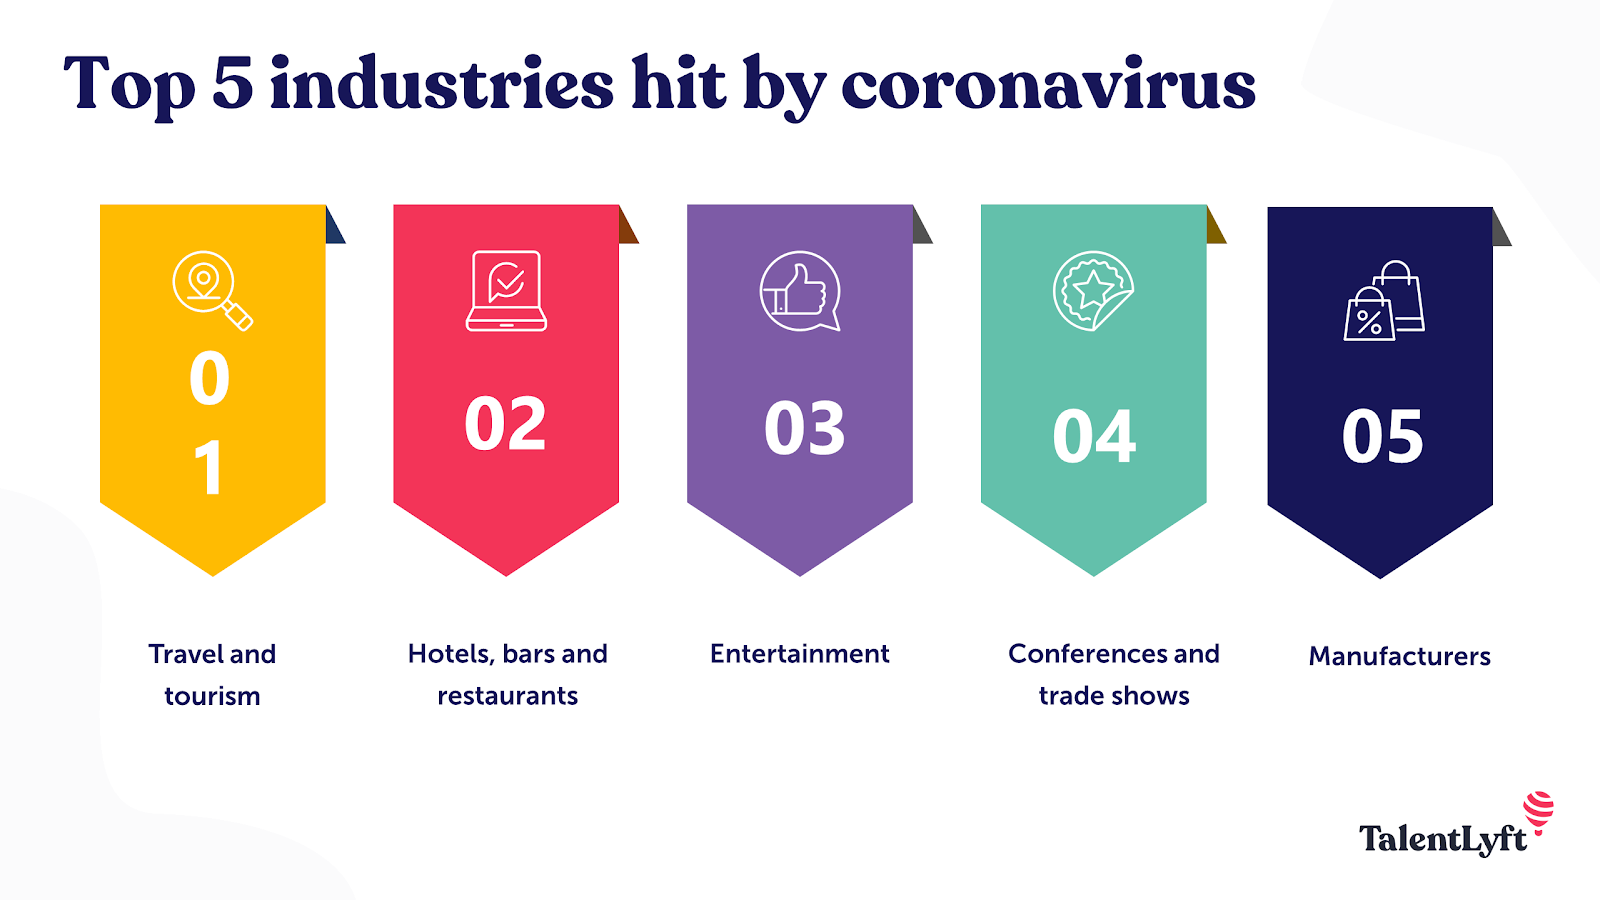 Industries that are more susceptible to coronavirus economic impacts